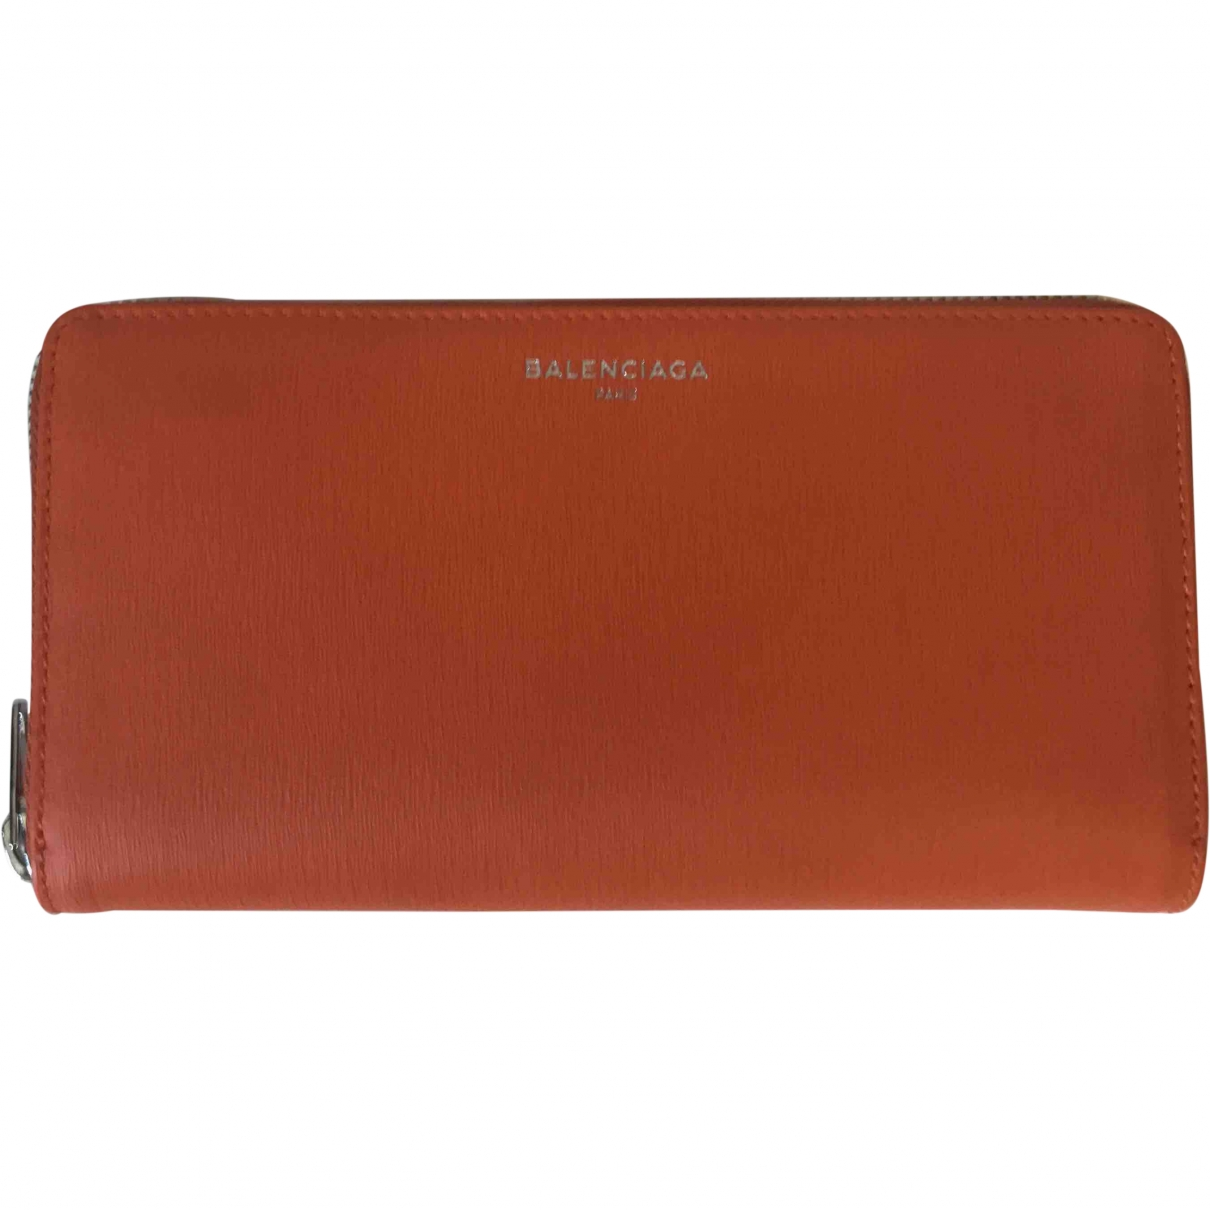 Balenciaga \N Orange Leather wallet for Women \N